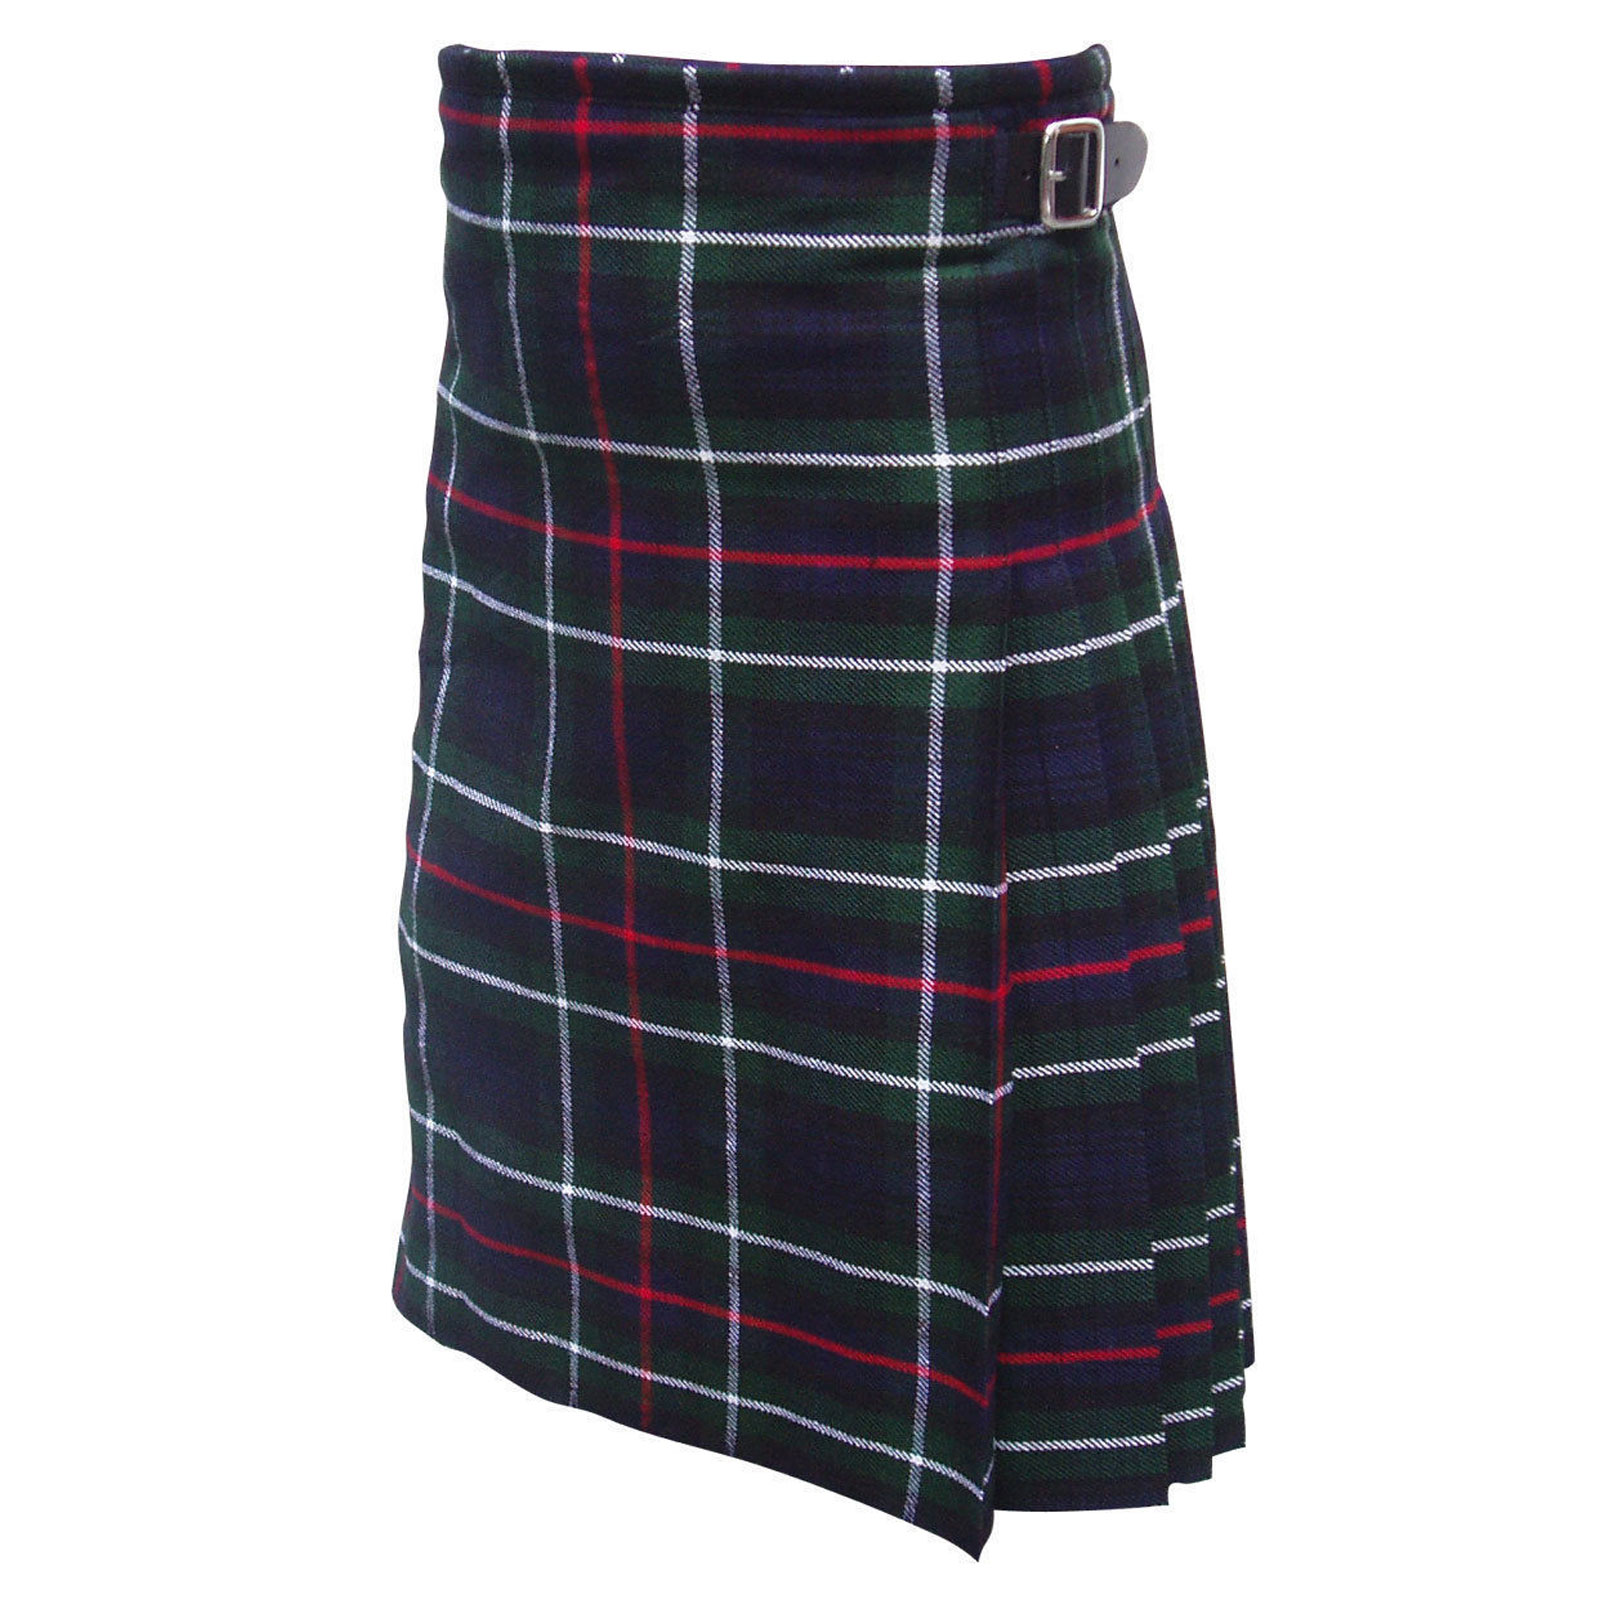 scottish-5-yard-acrylic-highland-casual-kilt-mackenzei